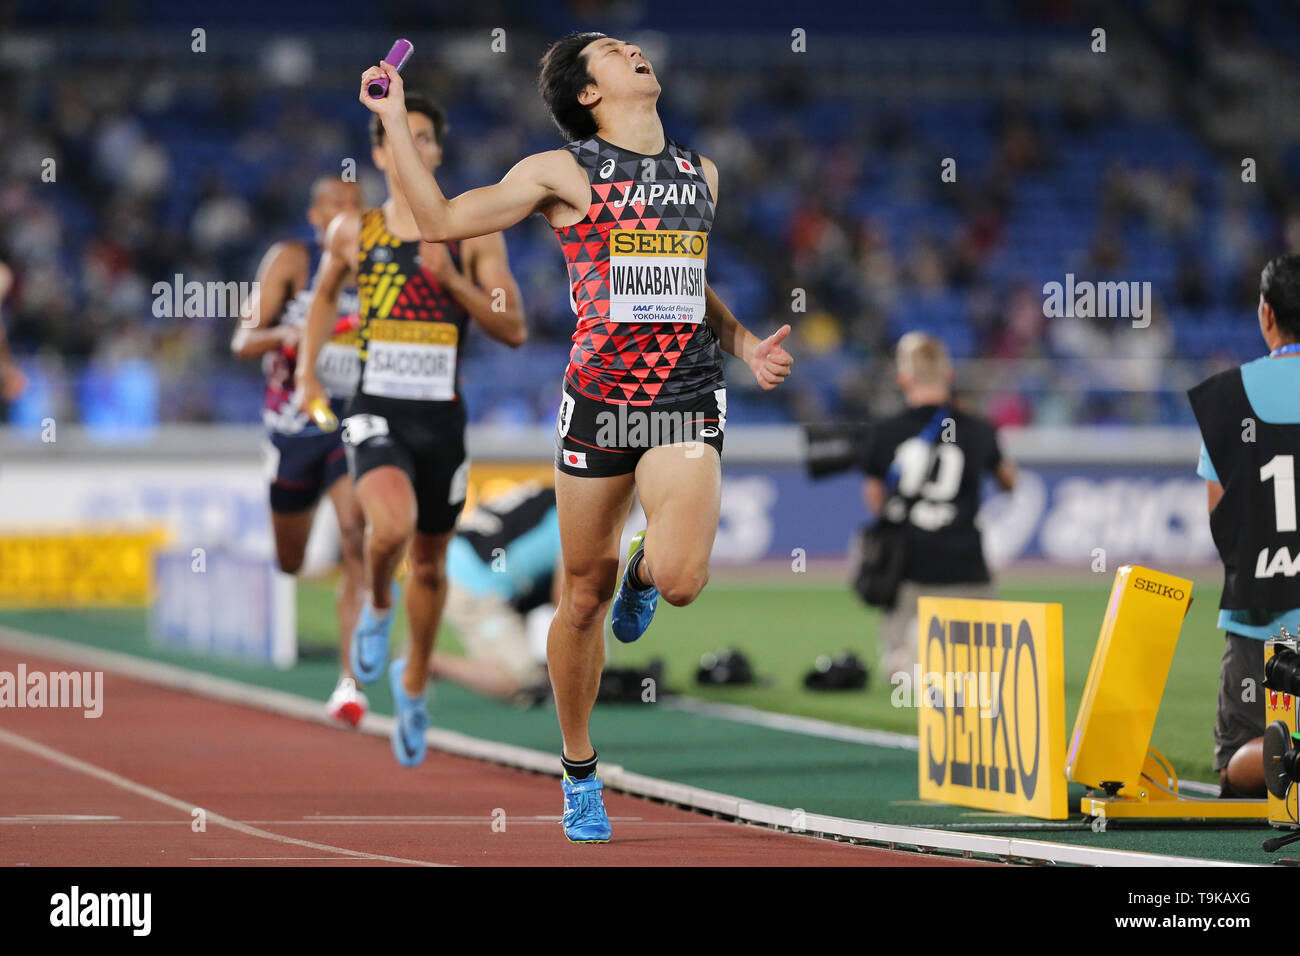 YOKOHAMA, JAPAN - MAY 10: Kota Wakabayashi of Japan during Day 1 of the 2019 IAAF World Relay Championships at the Nissan Stadium on Saturday May 11, 2019 in Yokohama, Japan. (Photo by Roger Sedres for the IAAF) - Stock Image